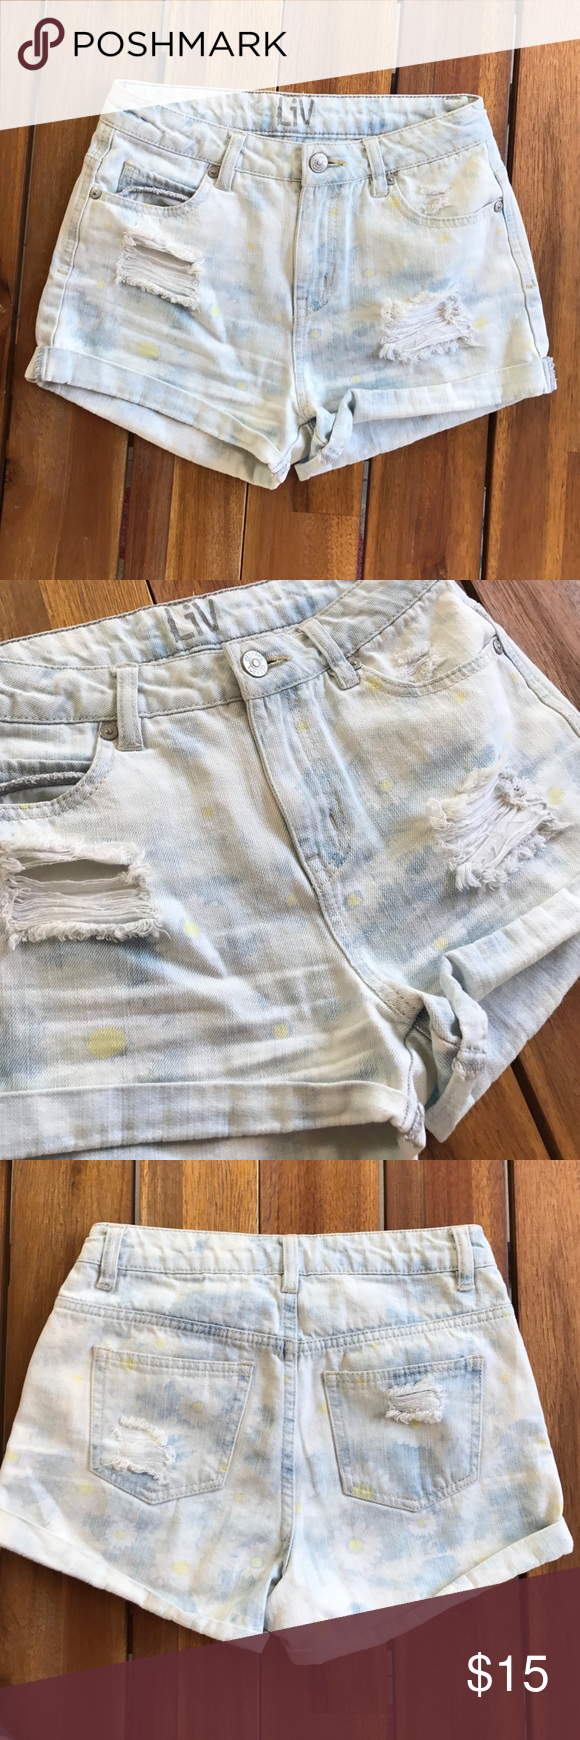 Delias High Waisted Shorts Light Wash with Daisy's // size 0 // Distressed // good condition delias Shorts Jean Shorts